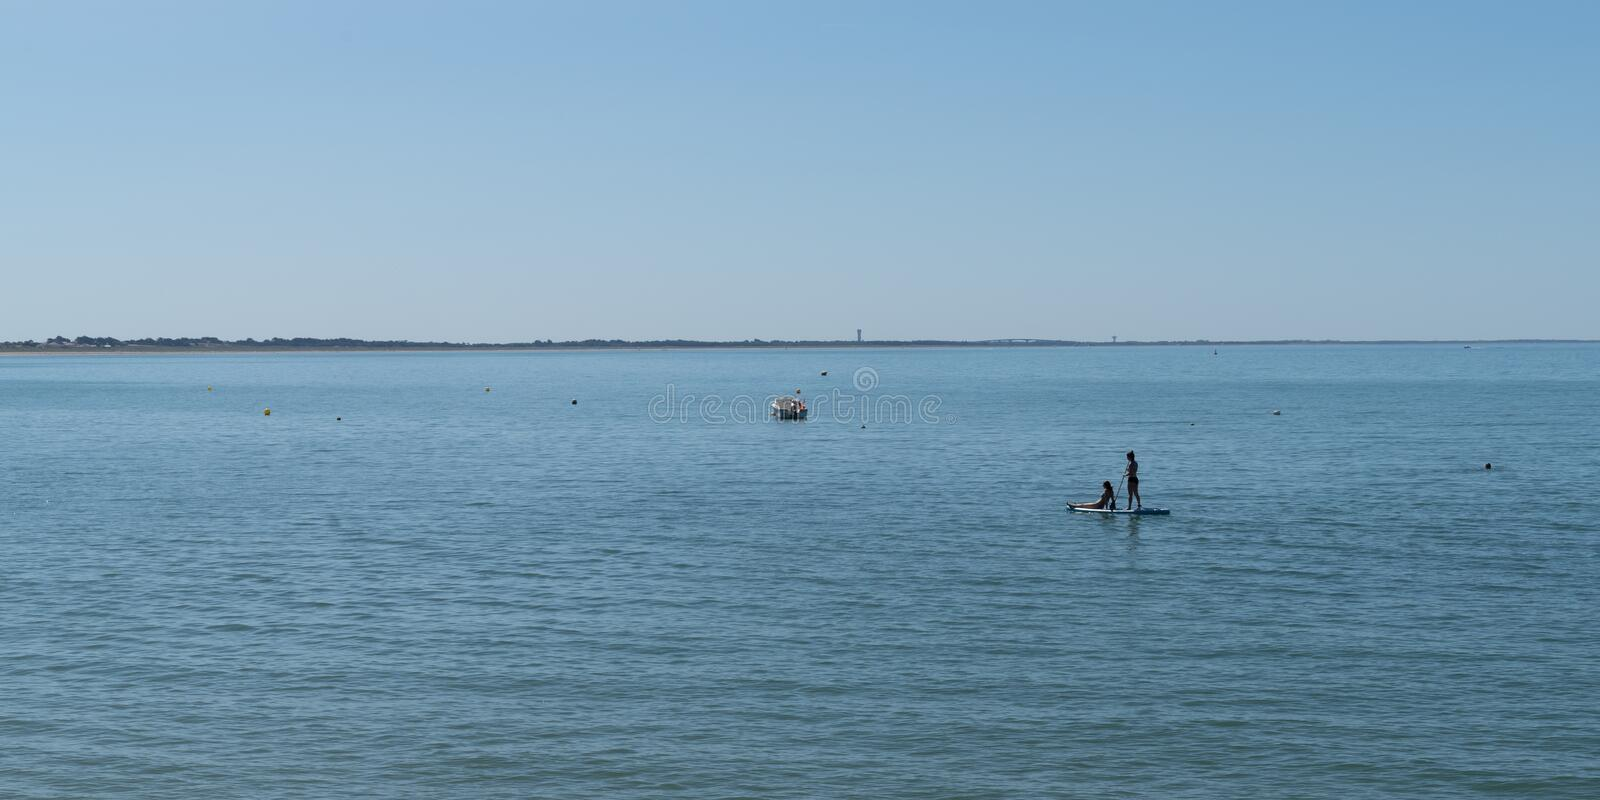 Panorama young girls on stand up paddle board sap in water sea beach summer season boat and ship vacation concept royalty free stock photography